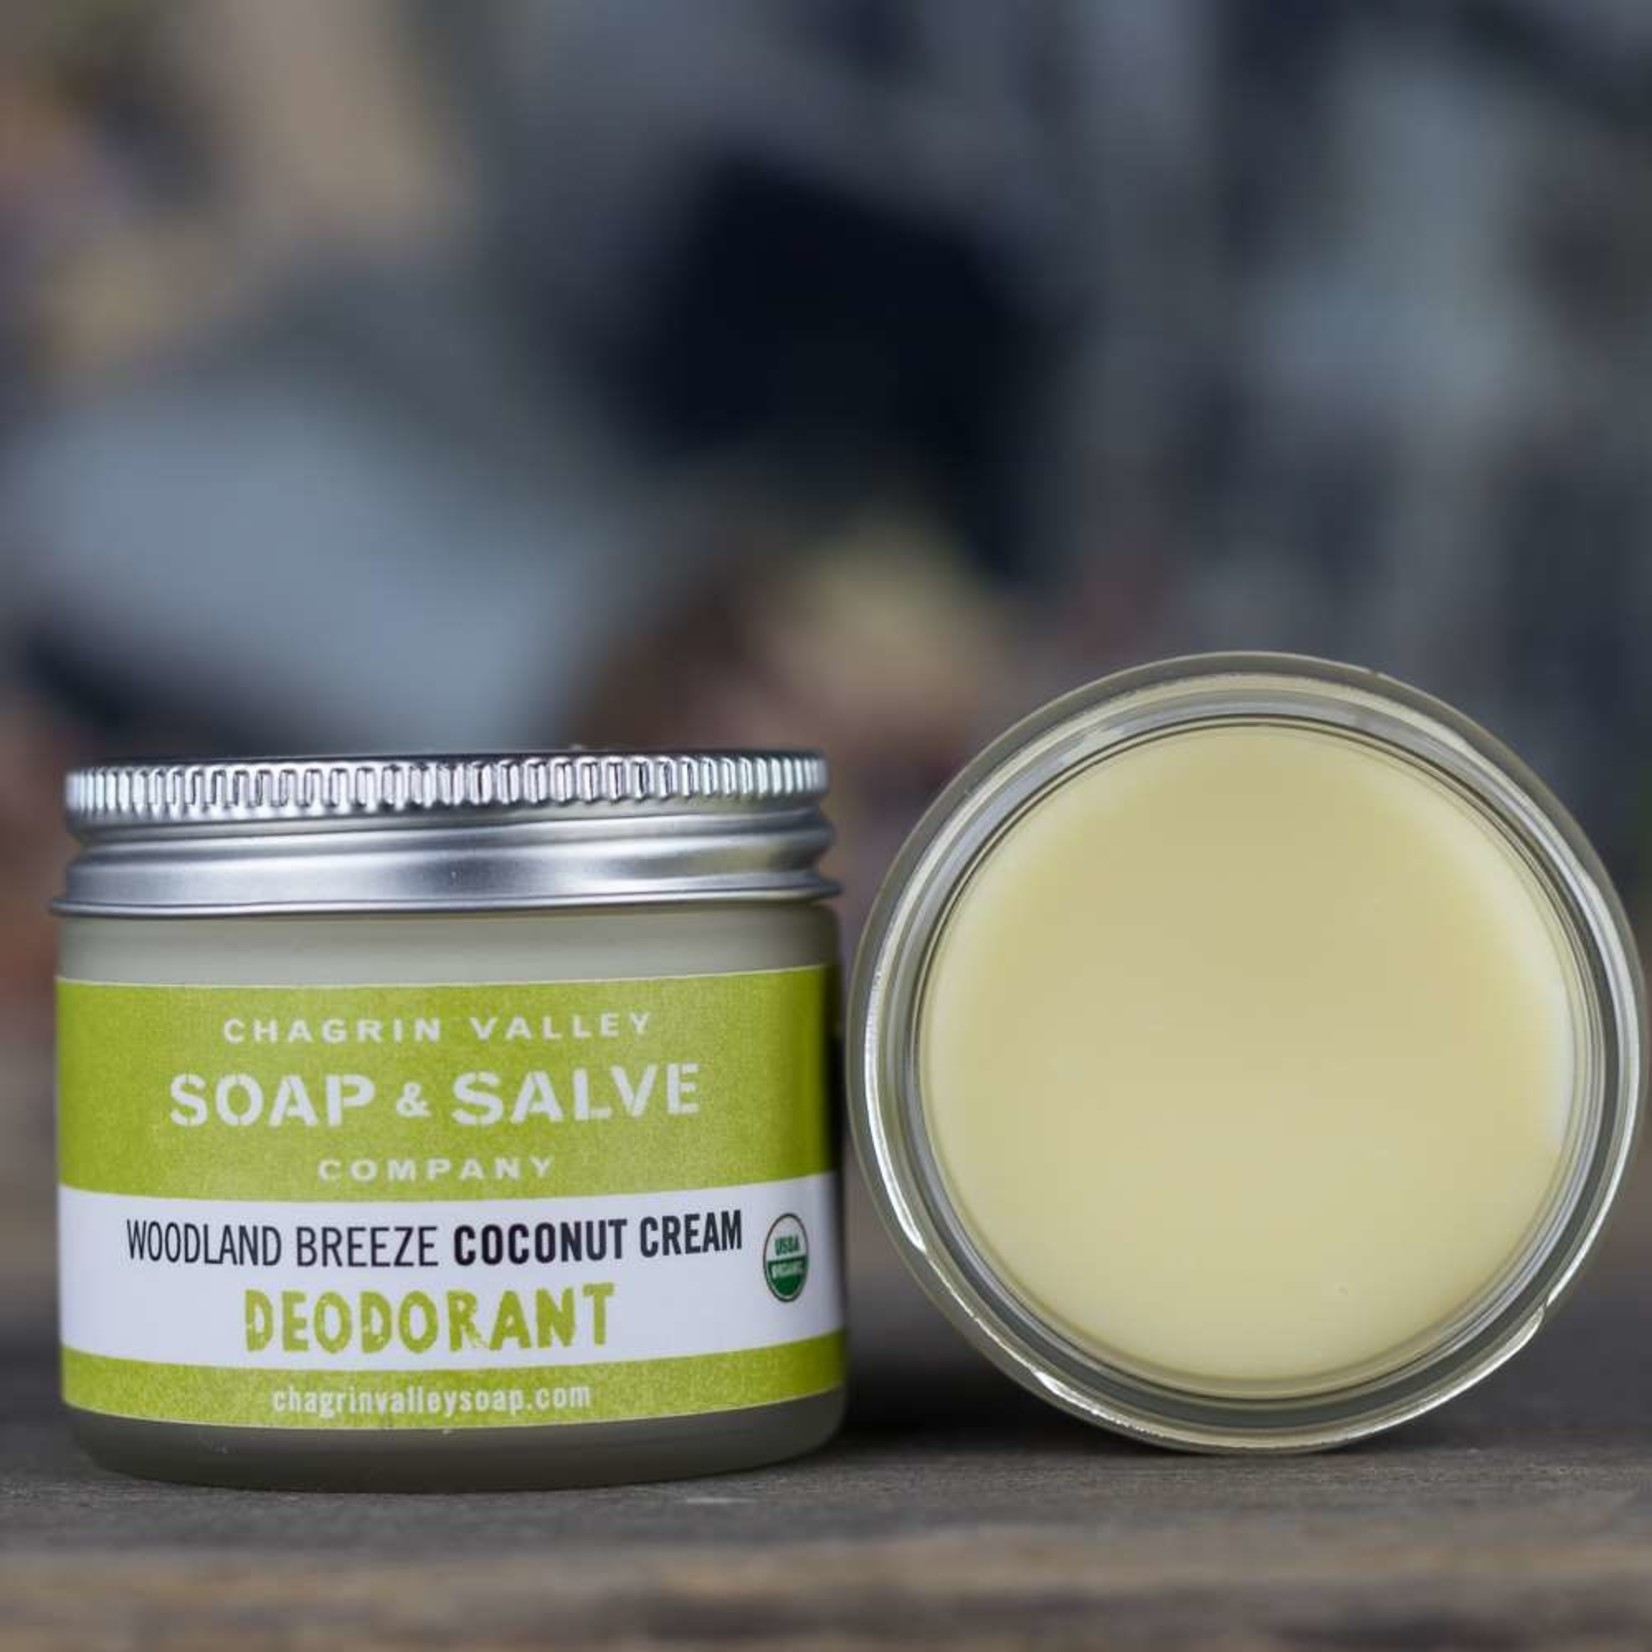 Chagrin Valley Soap and Salve Woodland Breeze Coconut Cream Deodorant